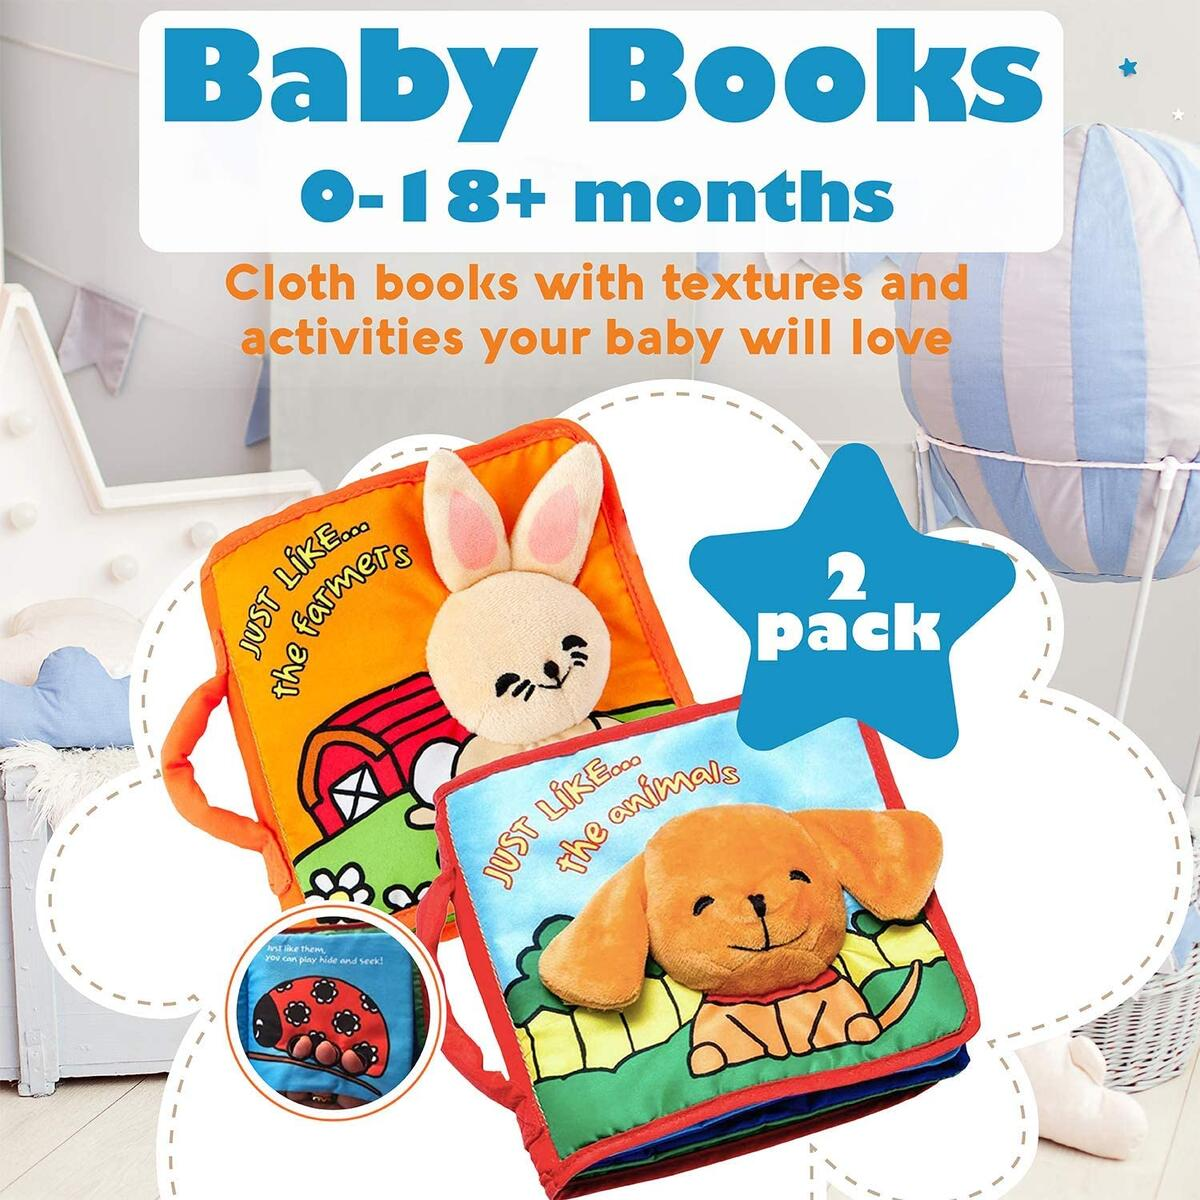 Premium Baby Book (First Year), Cloth Book Baby Gift, Fun Interactive Soft Book for Babies, Infants, Boys & Girls with Crinkly Sounds, Cute Baby Shower Box, Touch and Feel, Peekaboo (2 Pack)